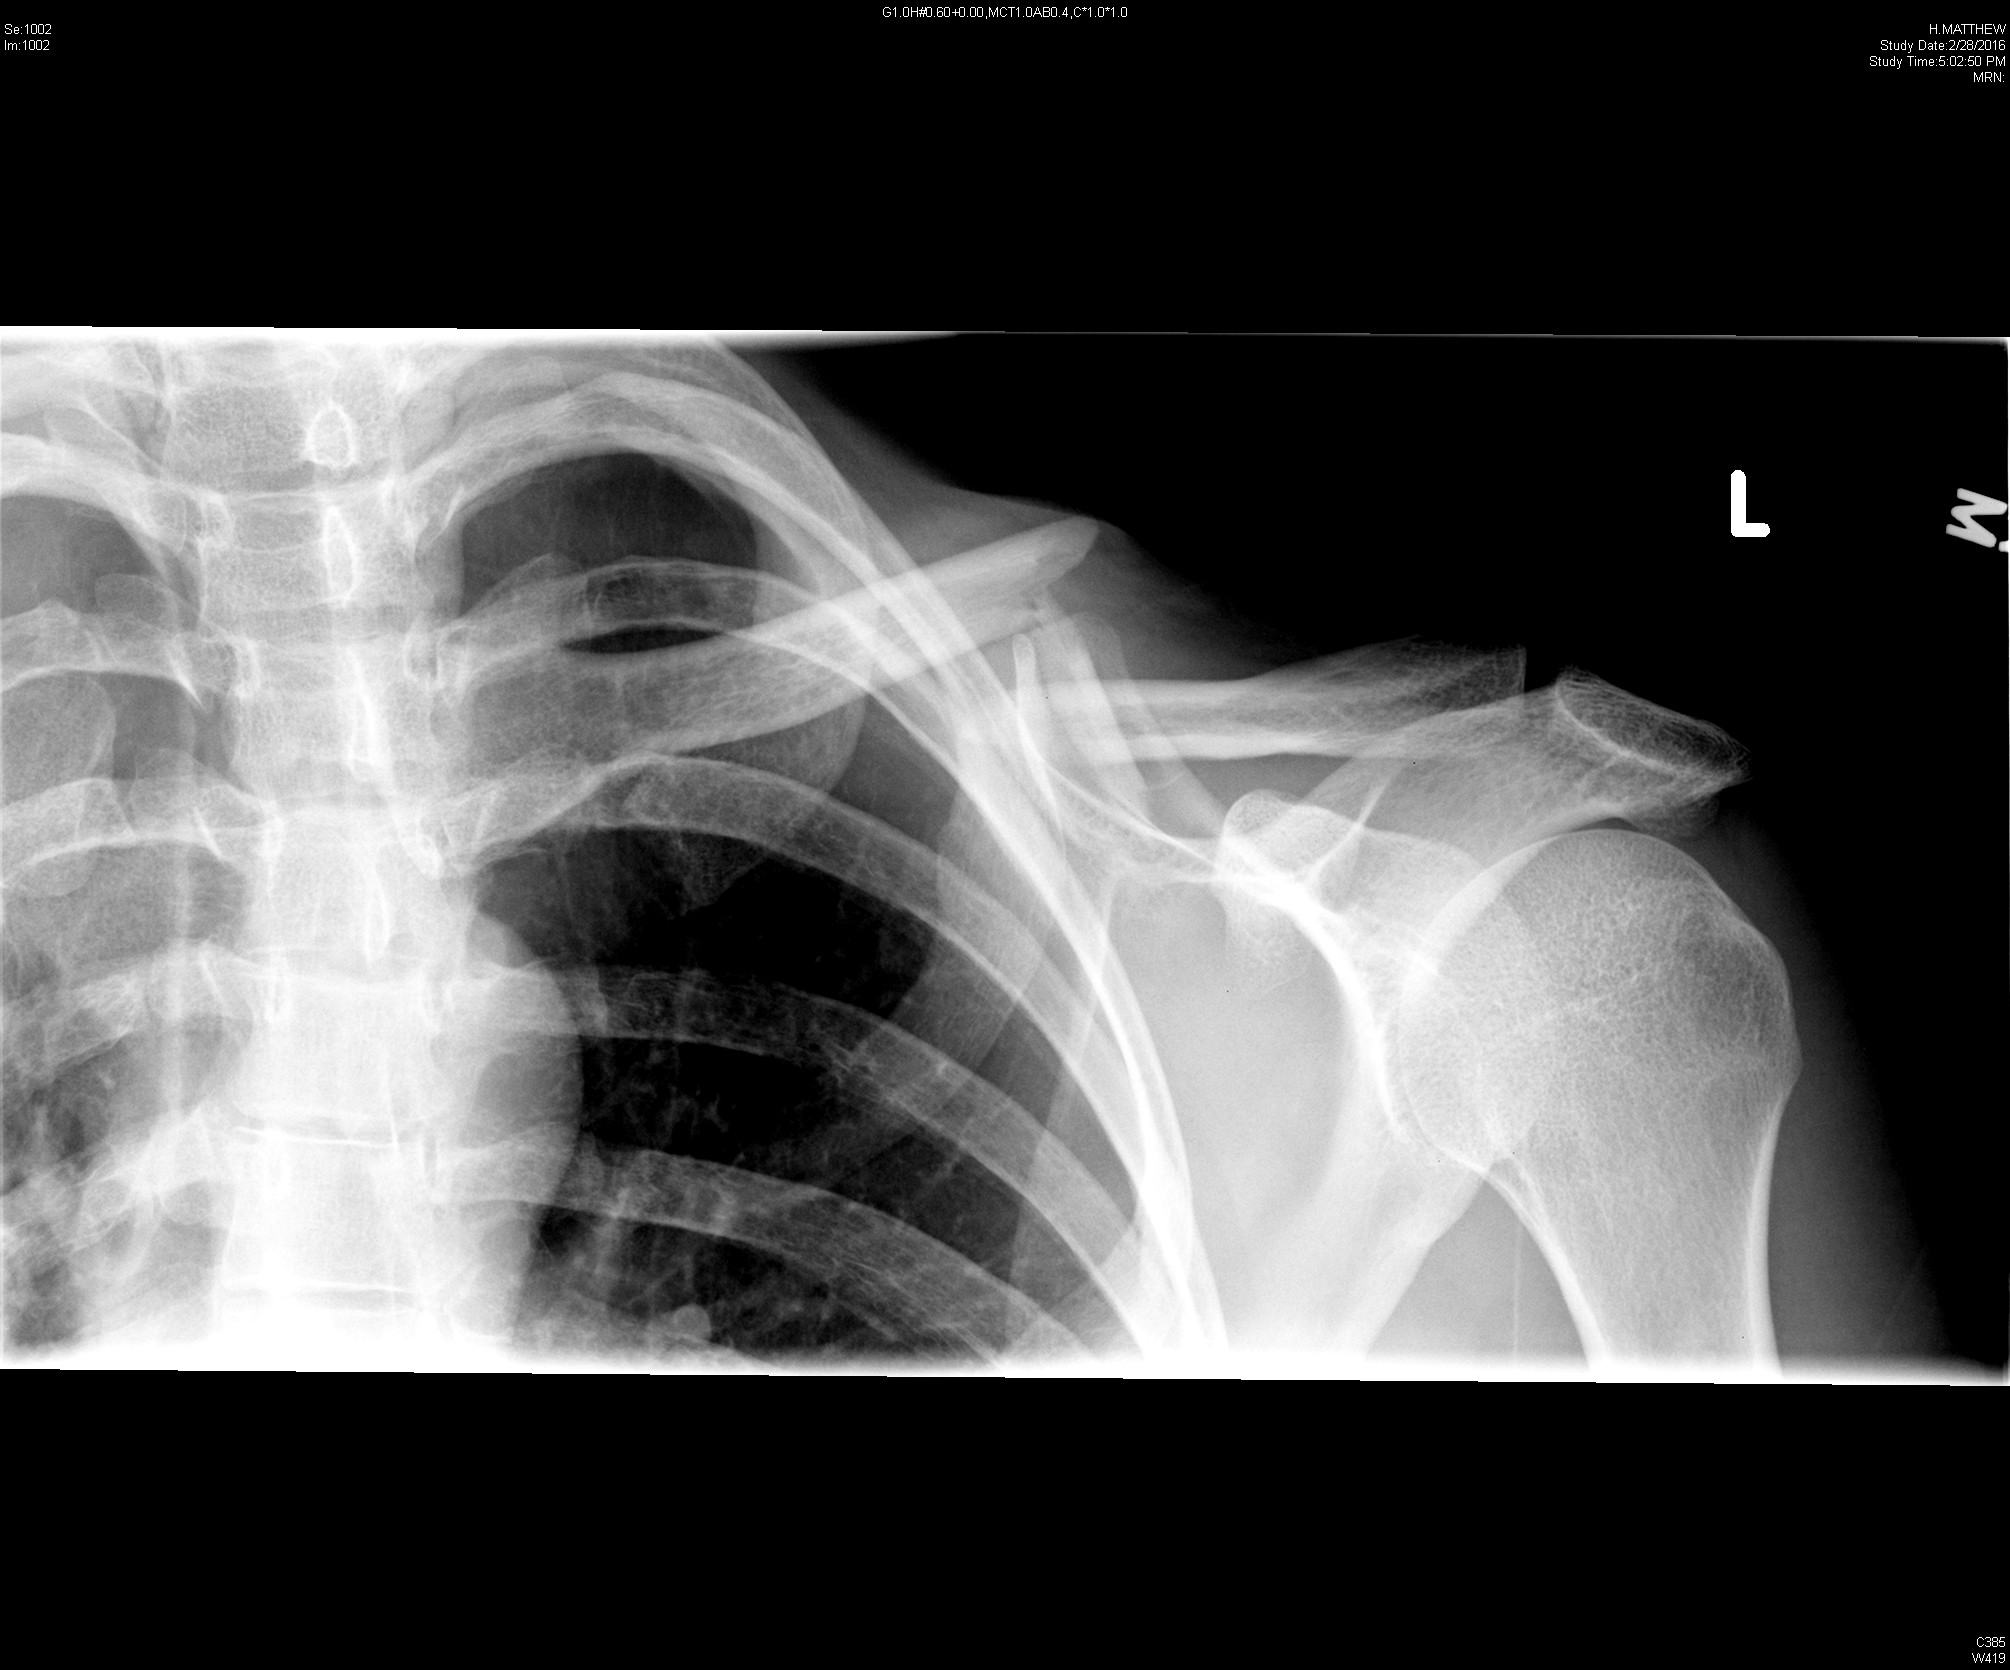 Figure 2: Clavicle radiograph showing mid-shaft clavicle fracture with displacement